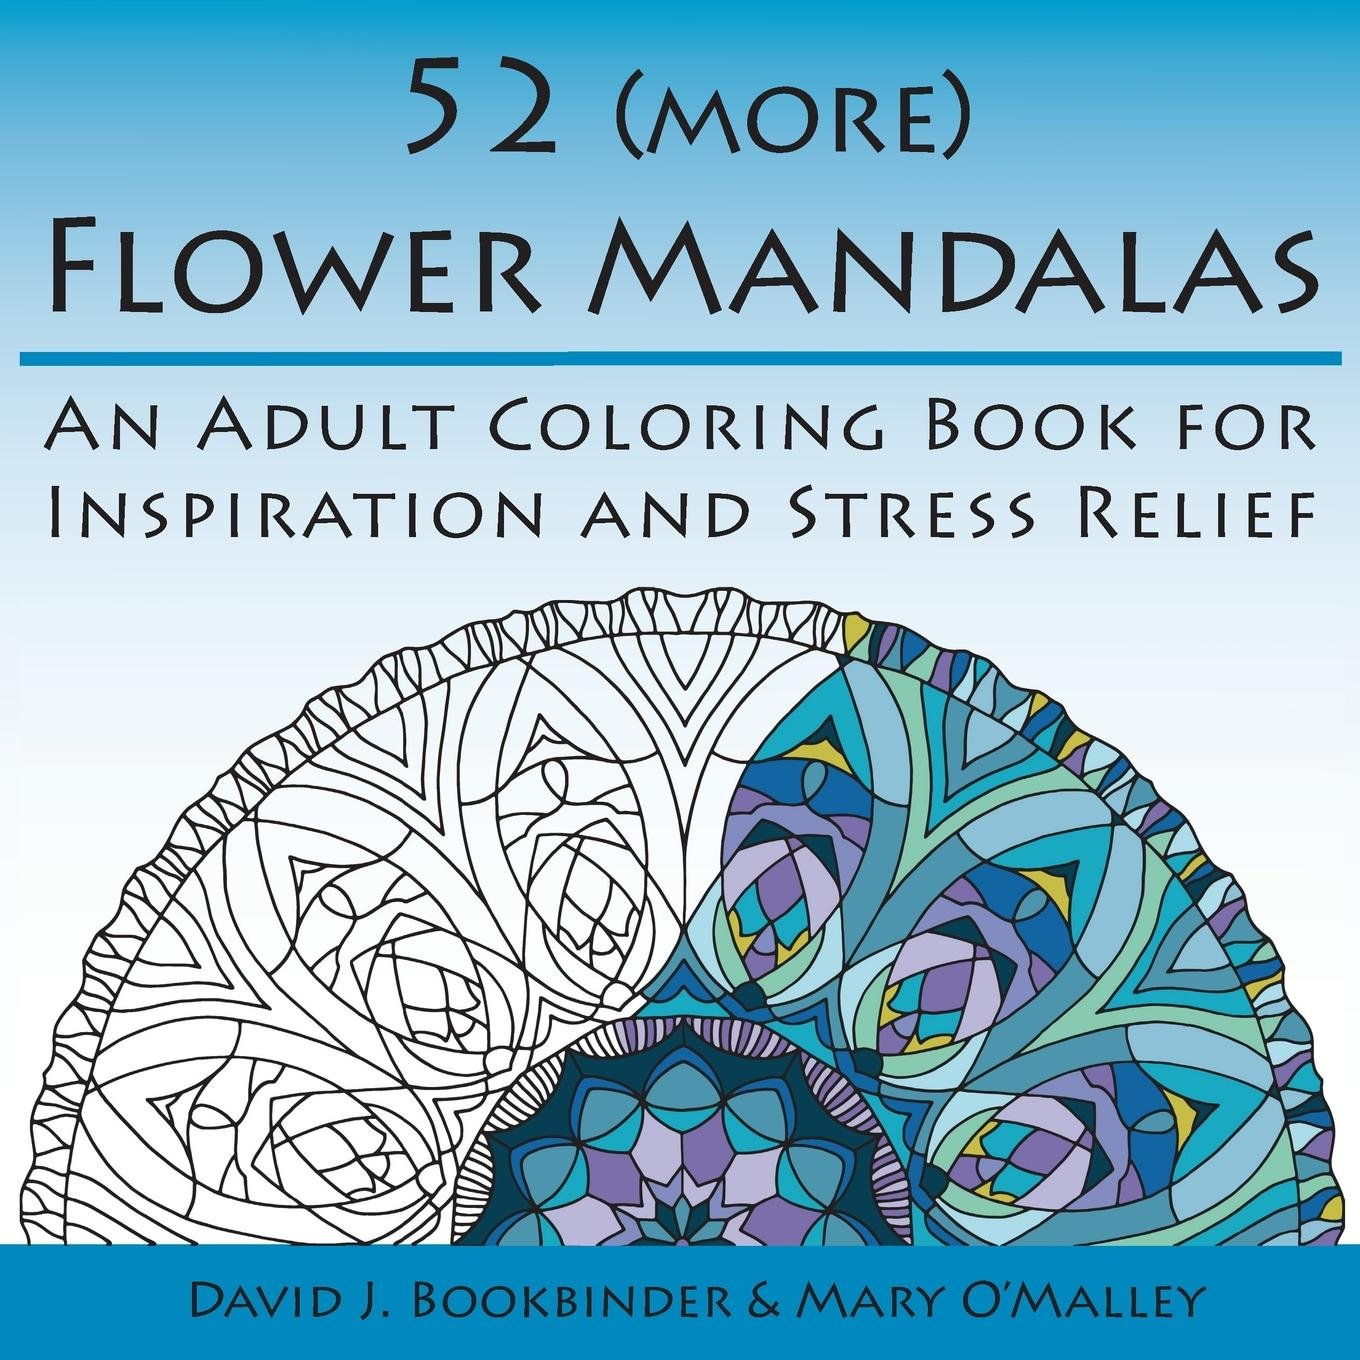 52 (more) Flower Mandalas: An Adult Coloring Book for Inspiration ...